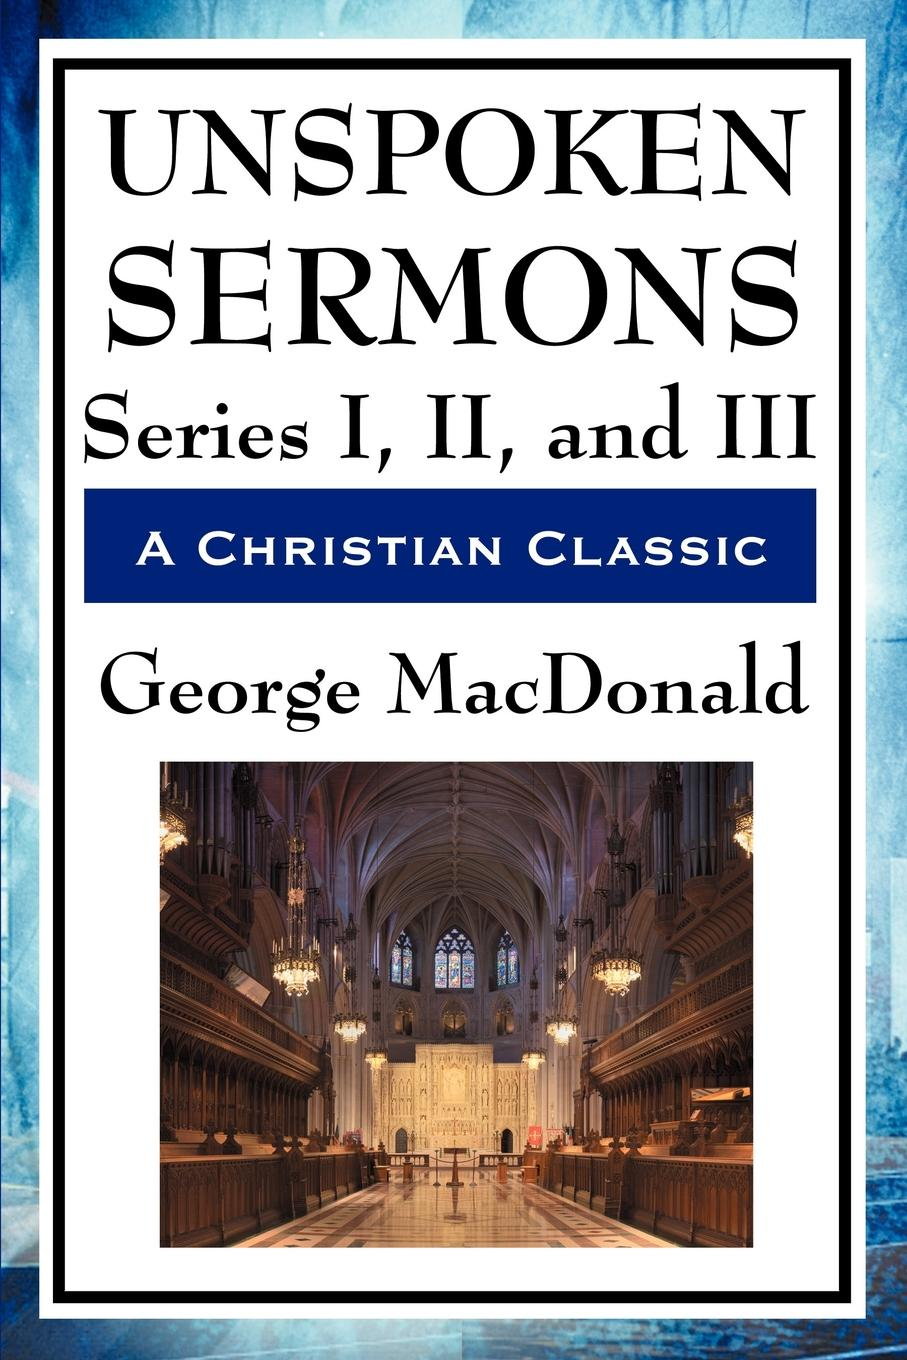 Unspoken Sermons Series I, II, and III By: George MacDonald